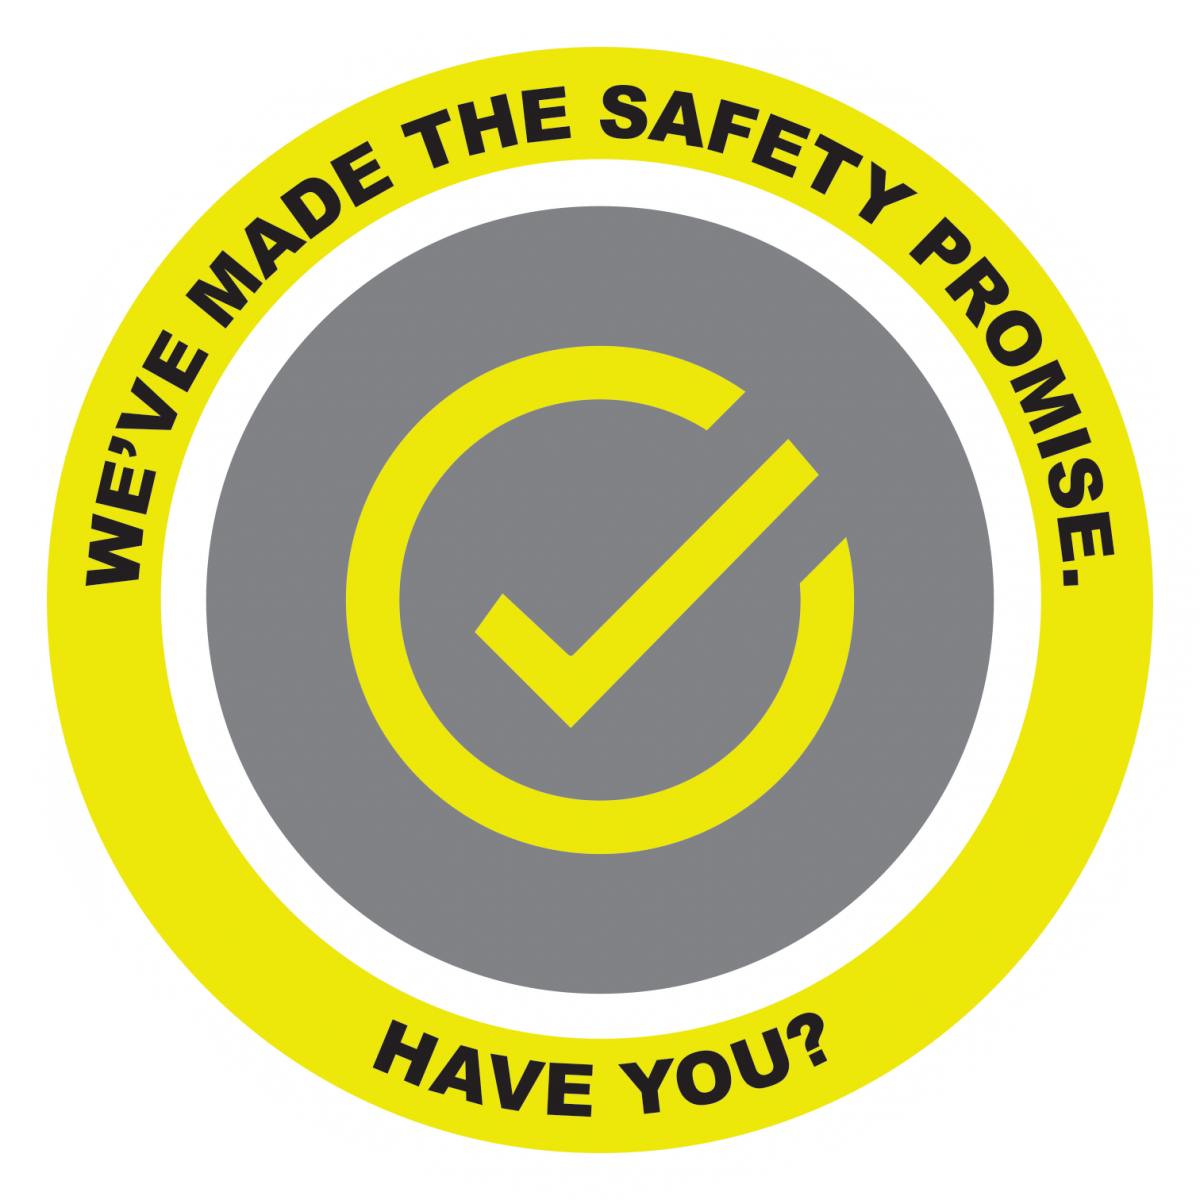 safety-promise-circle